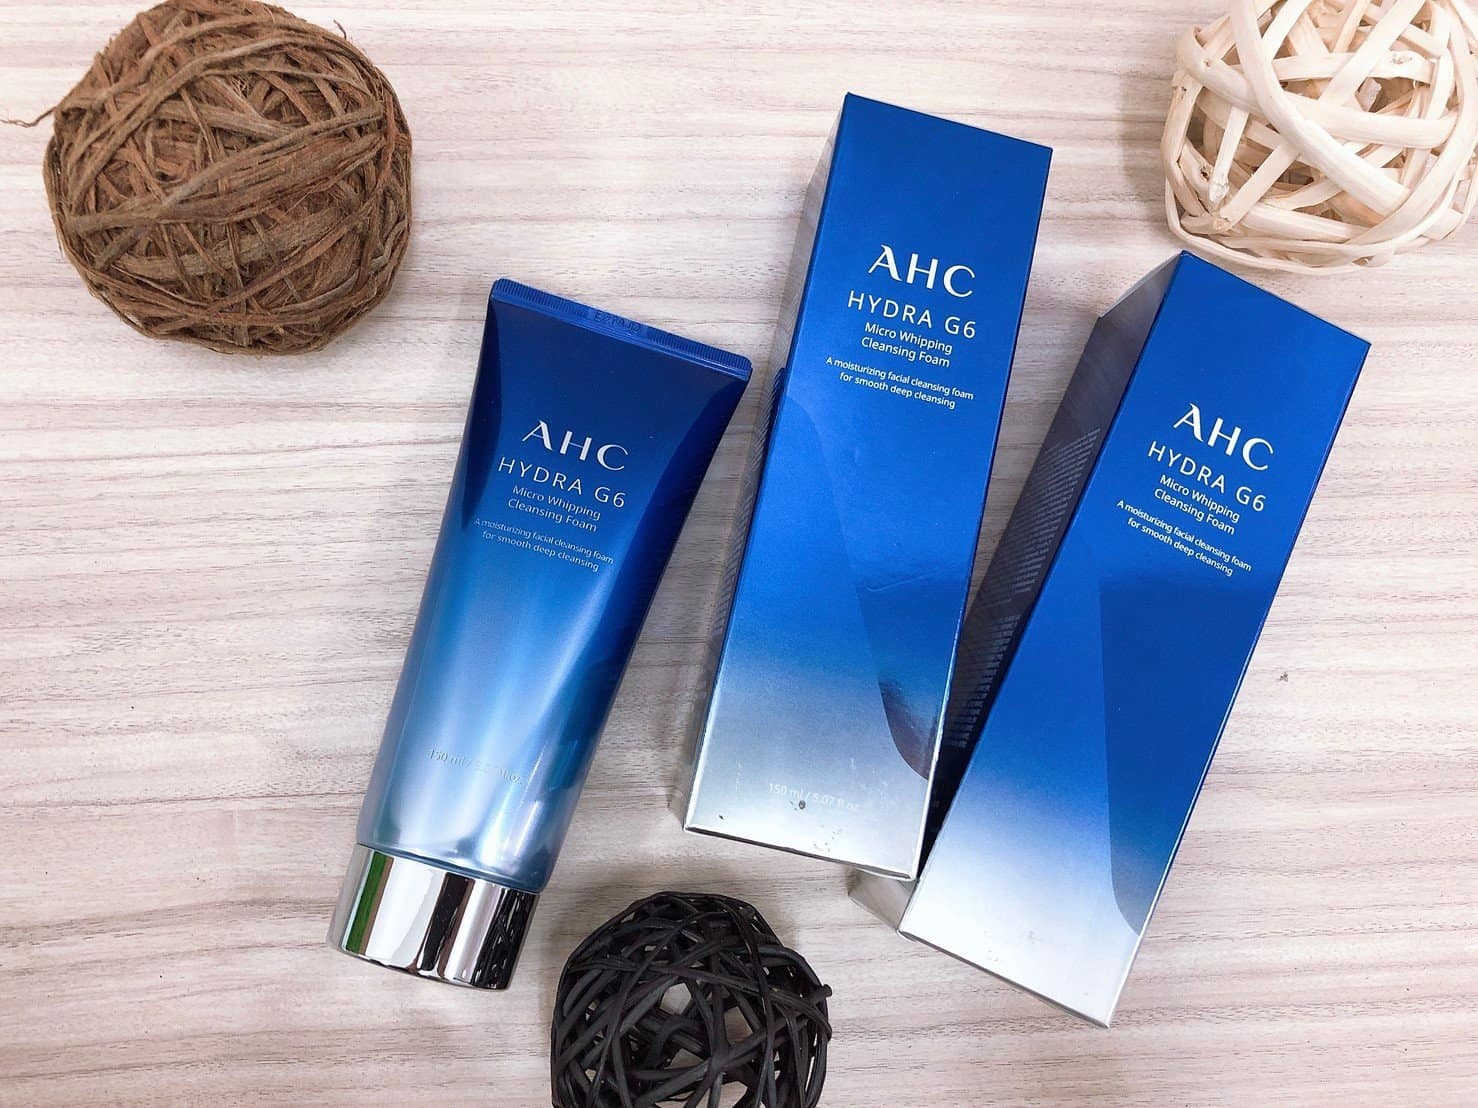 AHC Hydra G6 Micro Whipping Cleansing Foam preview